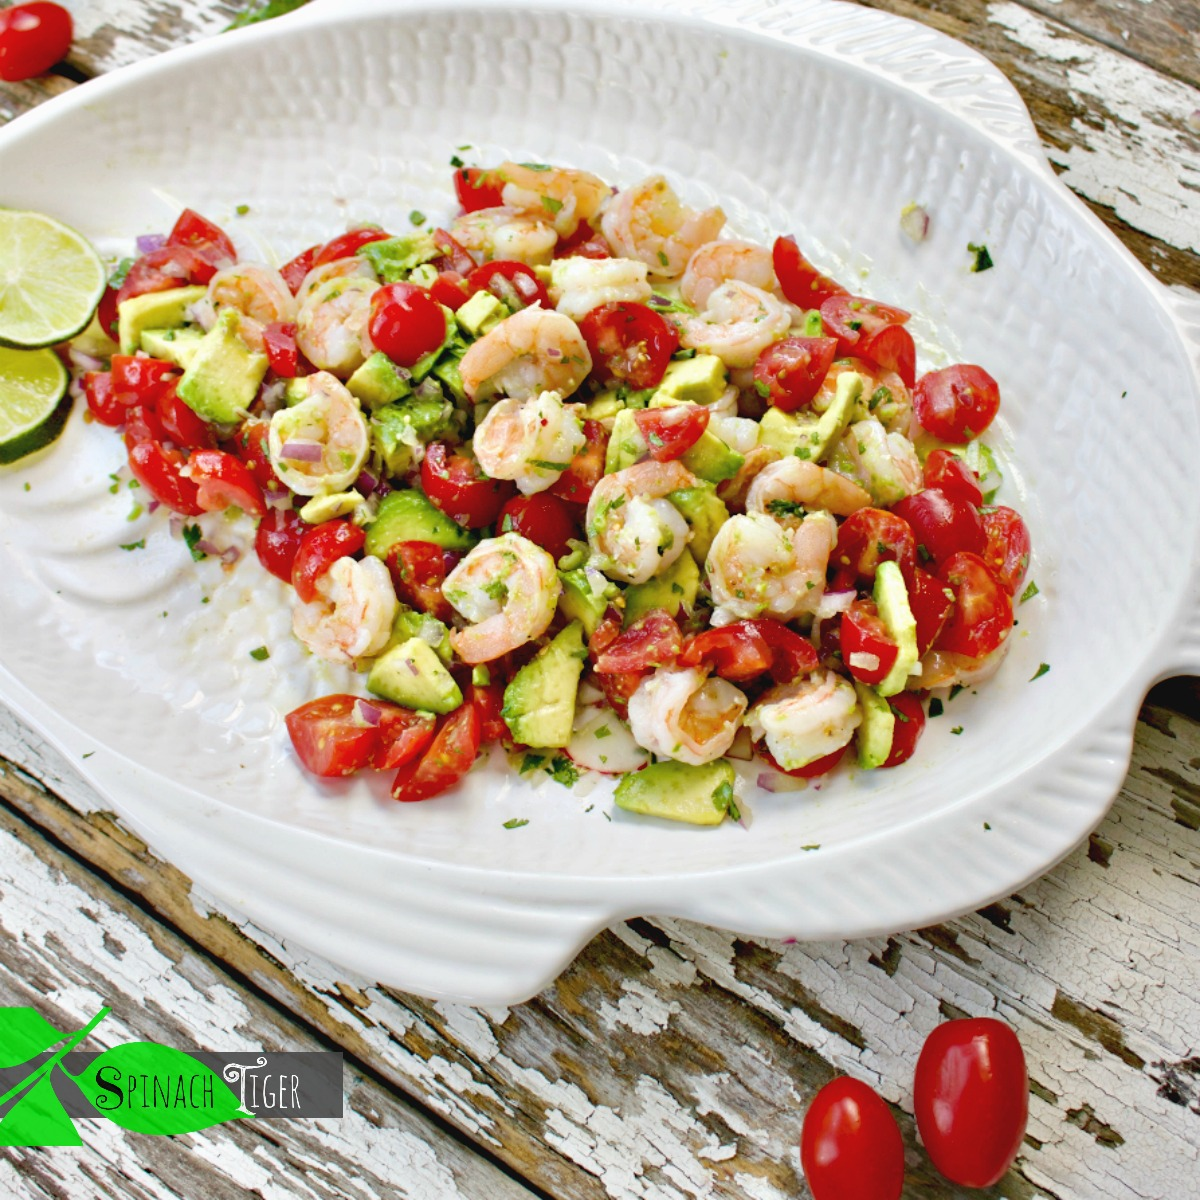 Shrimp Avocado Salad Recipe from Spinach Tiger